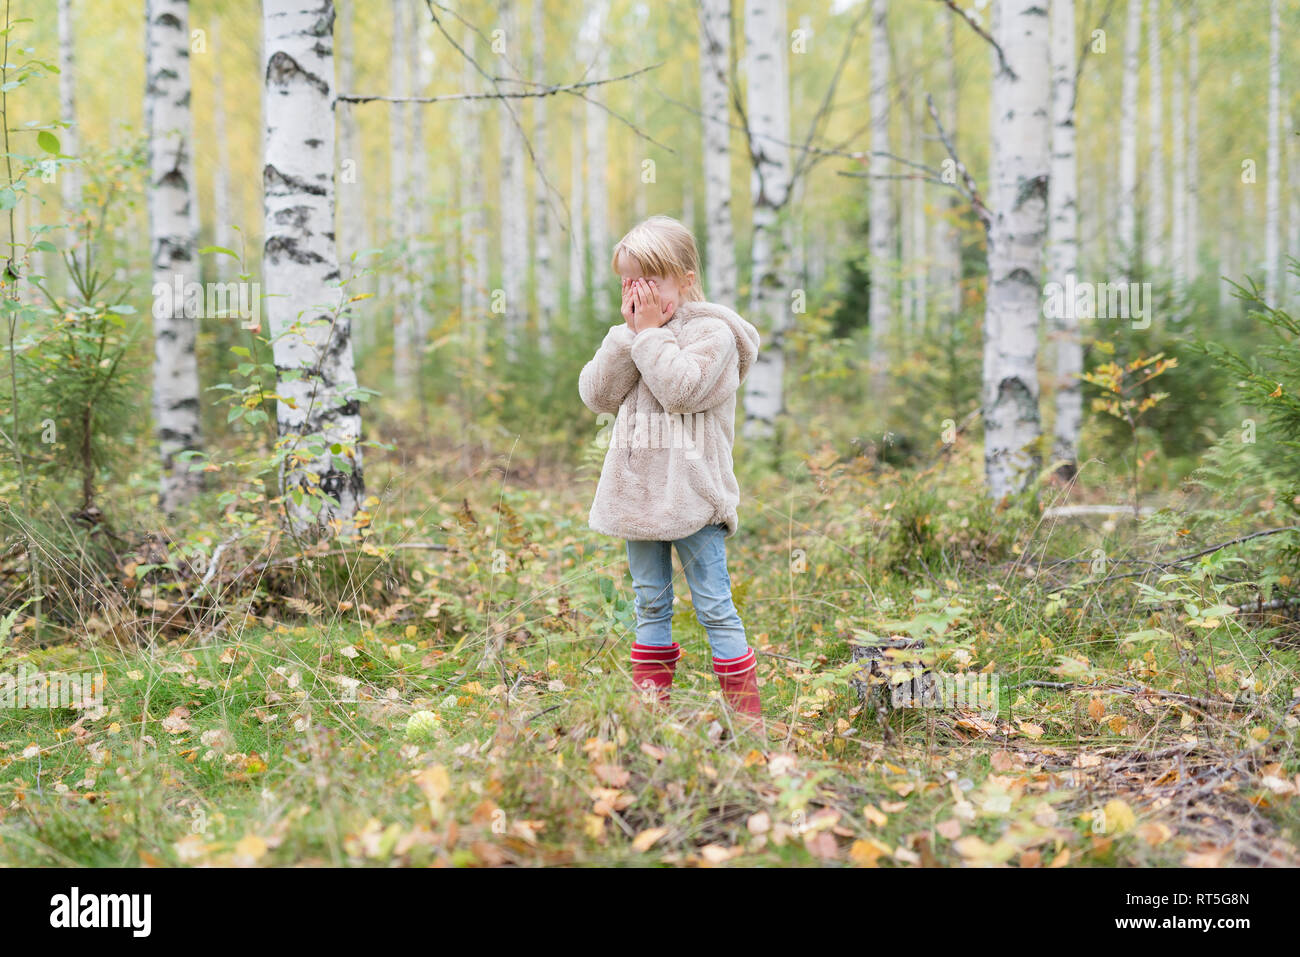 Blond girl playing Hide and Seek in a birch forest - Stock Image